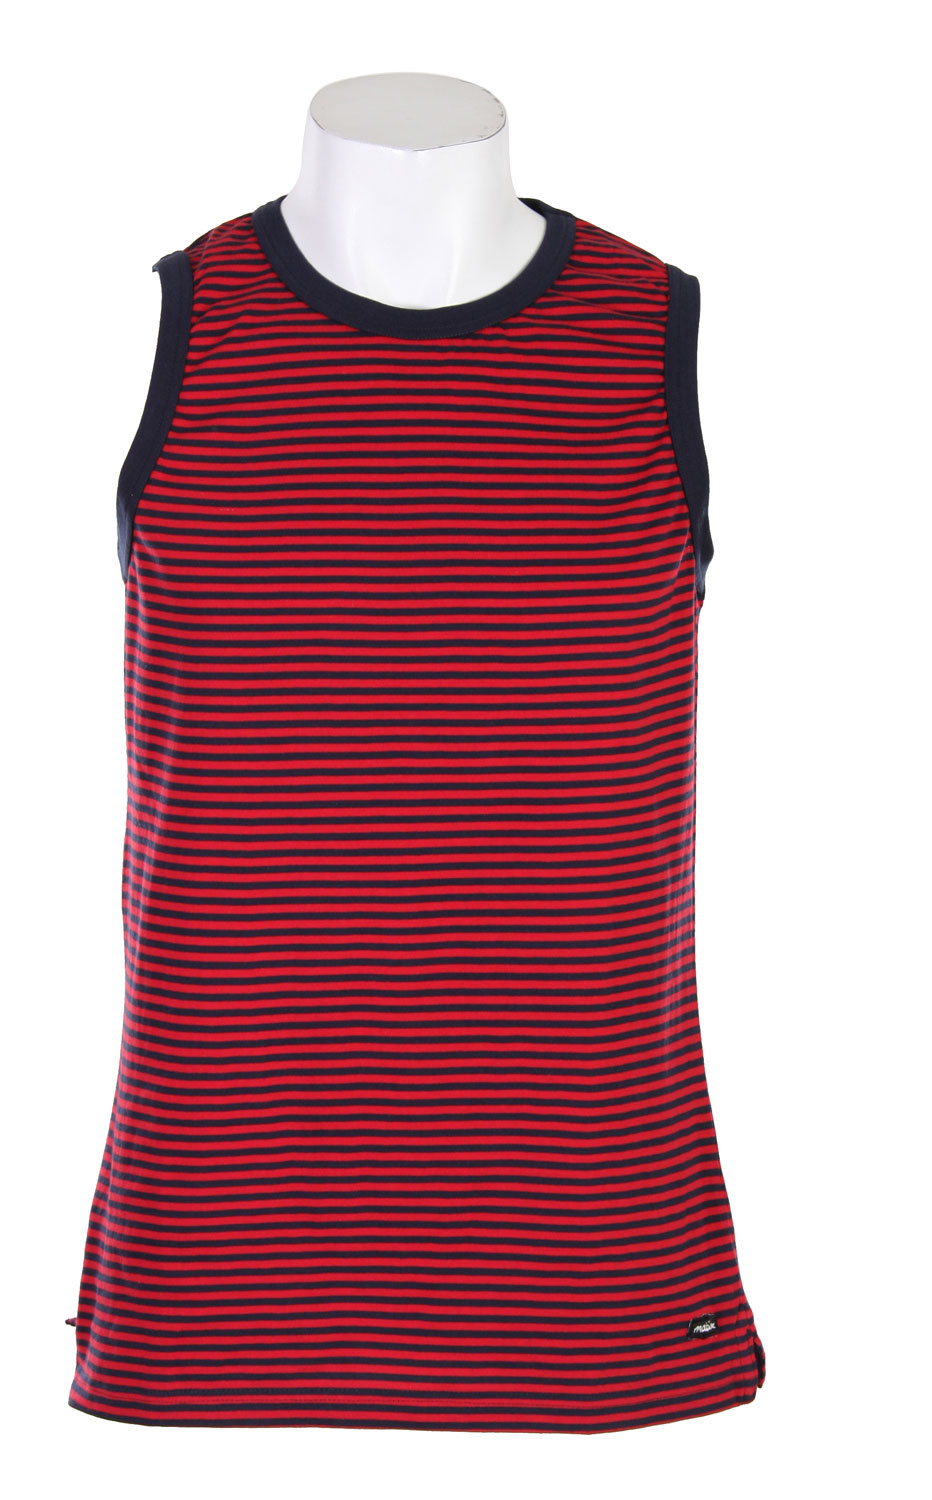 Surf A tank for men on the go, the Matix Parisian Tank beings a casual and cool vibe to any wardrobe. This tank made out of 100% cotton jersey features yarn dyed stripes and the Matrix logo. It is a nice spring tank top piece that can be paired perfectly with jeans for cargo shorts. Take your style to the next level with the Matix Parisian Tank. Priced just right, this tank won't break the bank and will keep you looking your best all summer long.Key Features of The Matix Parisian Tank: 100% Cotton Jersey Nice Spring Tanktop Piece Yarn Dyed Stripes Matix Labeling - $18.95